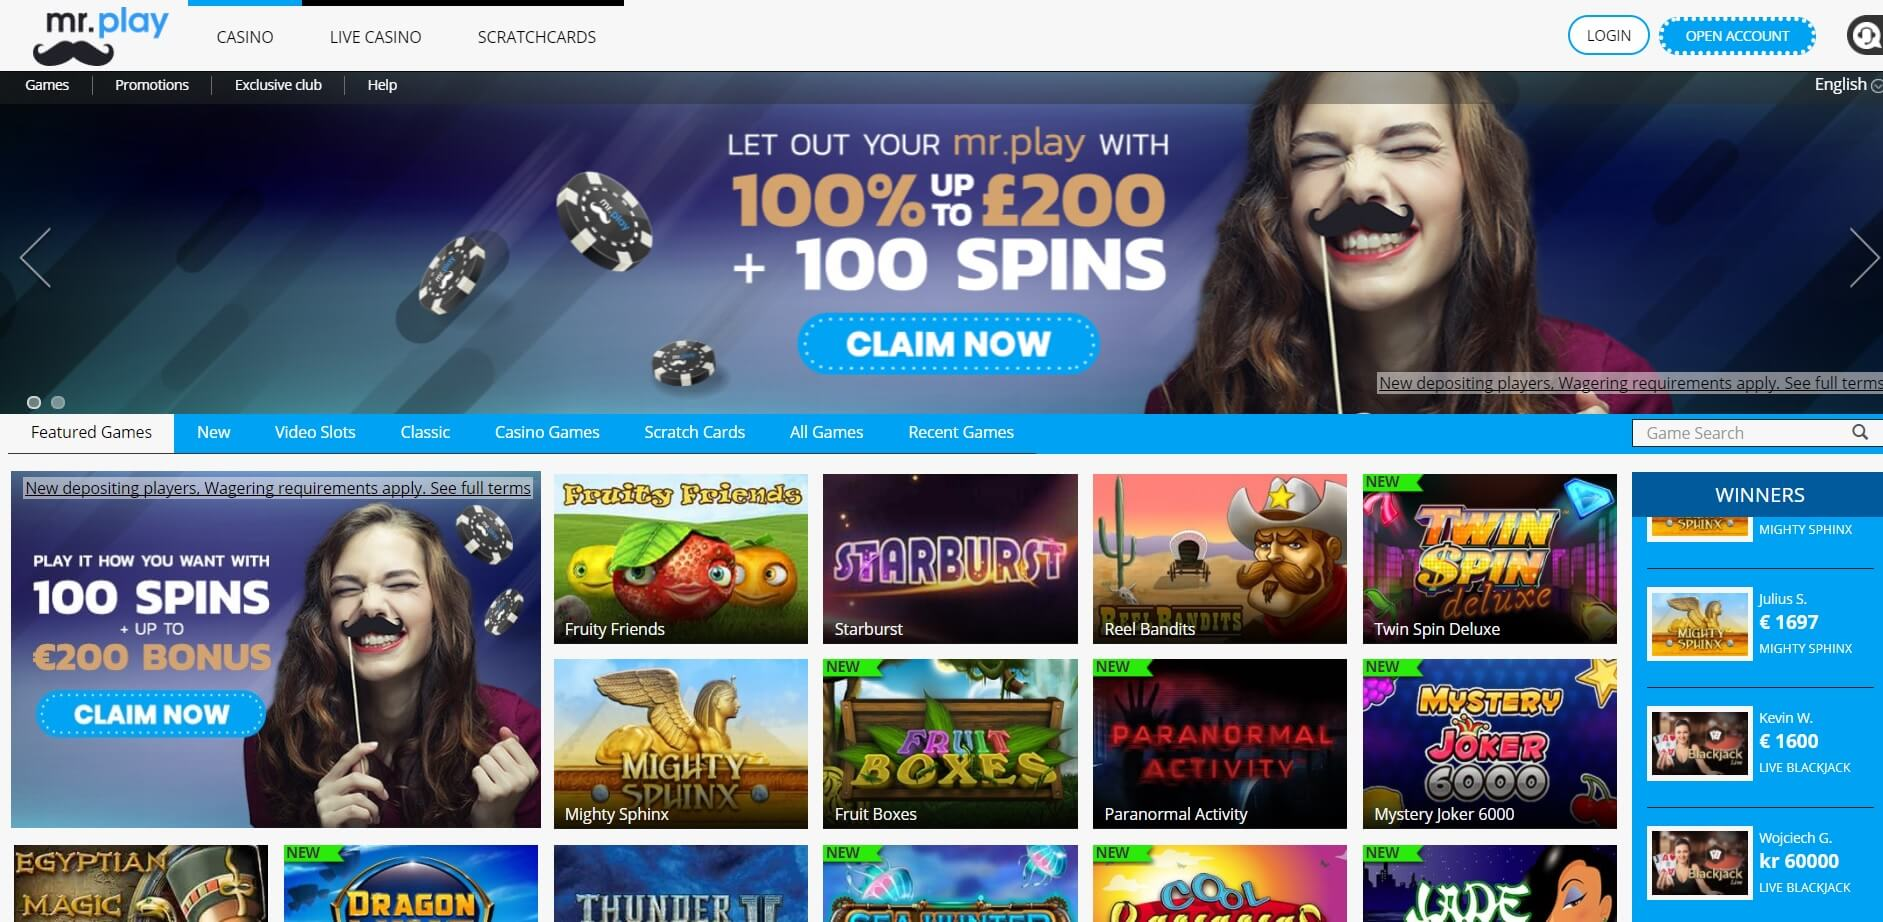 mrplay casino games